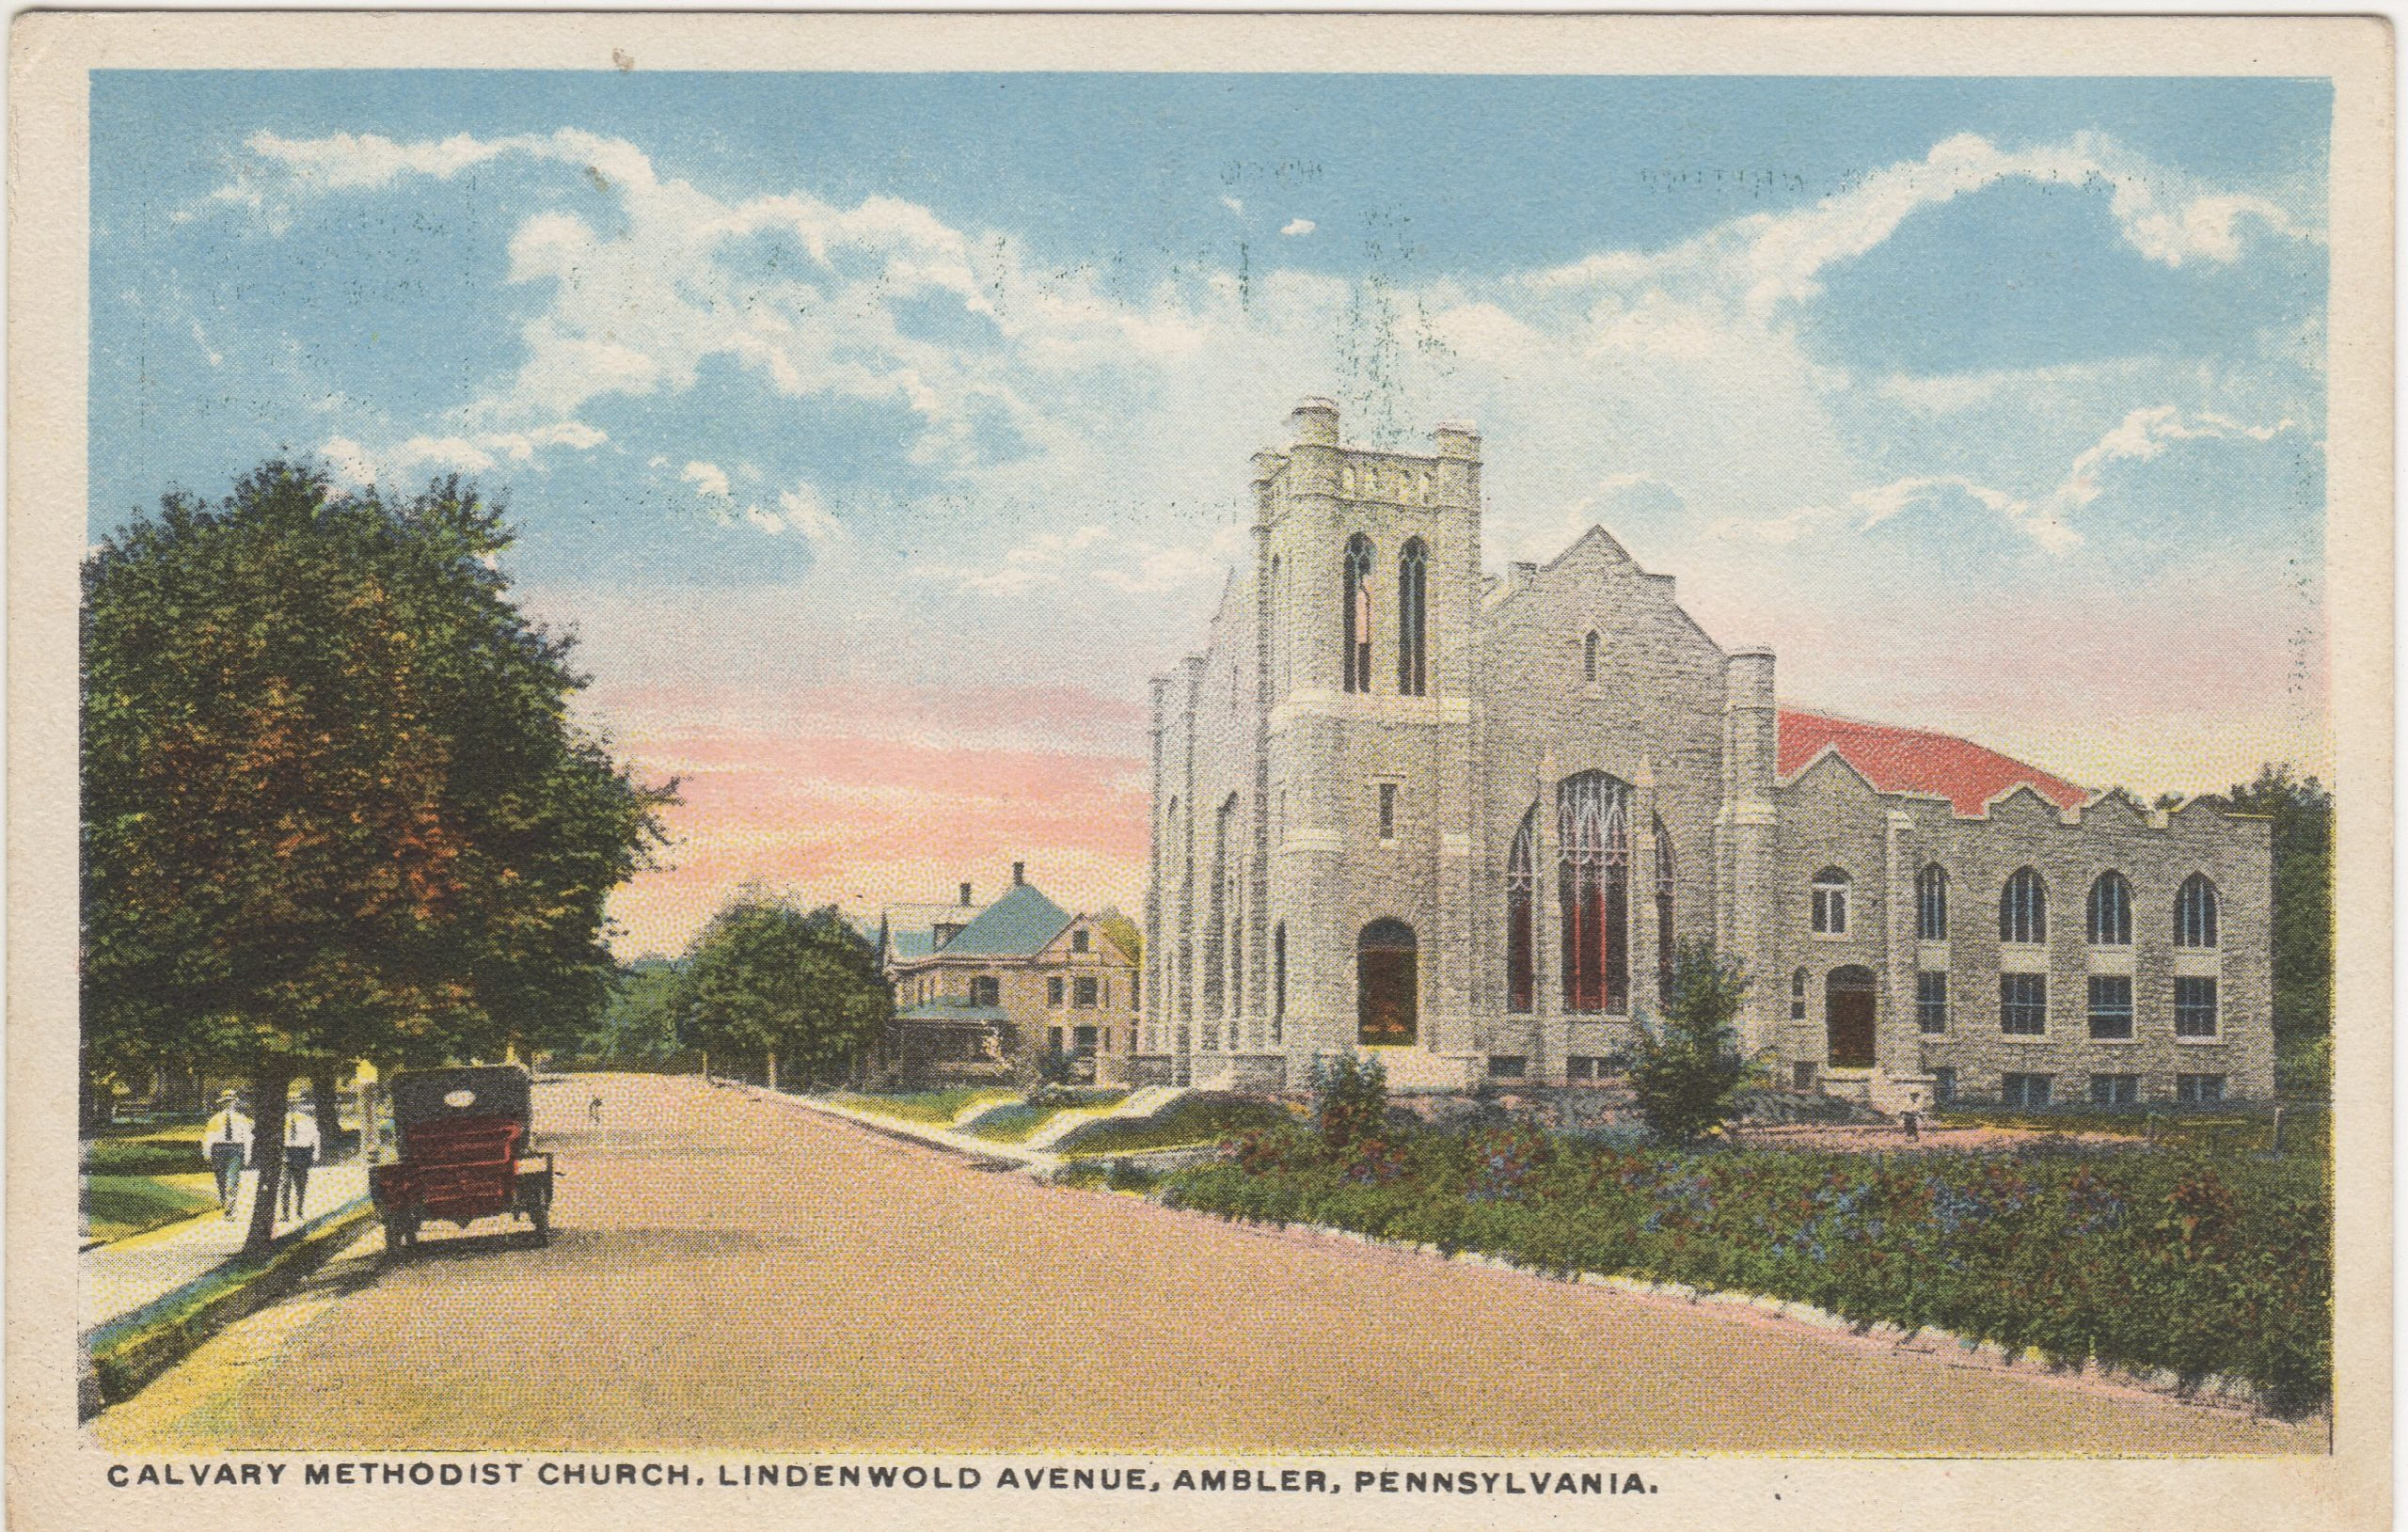 4125.13 Ambler Pa Postcard_Calvary Methodist Church Lindenwold Ave